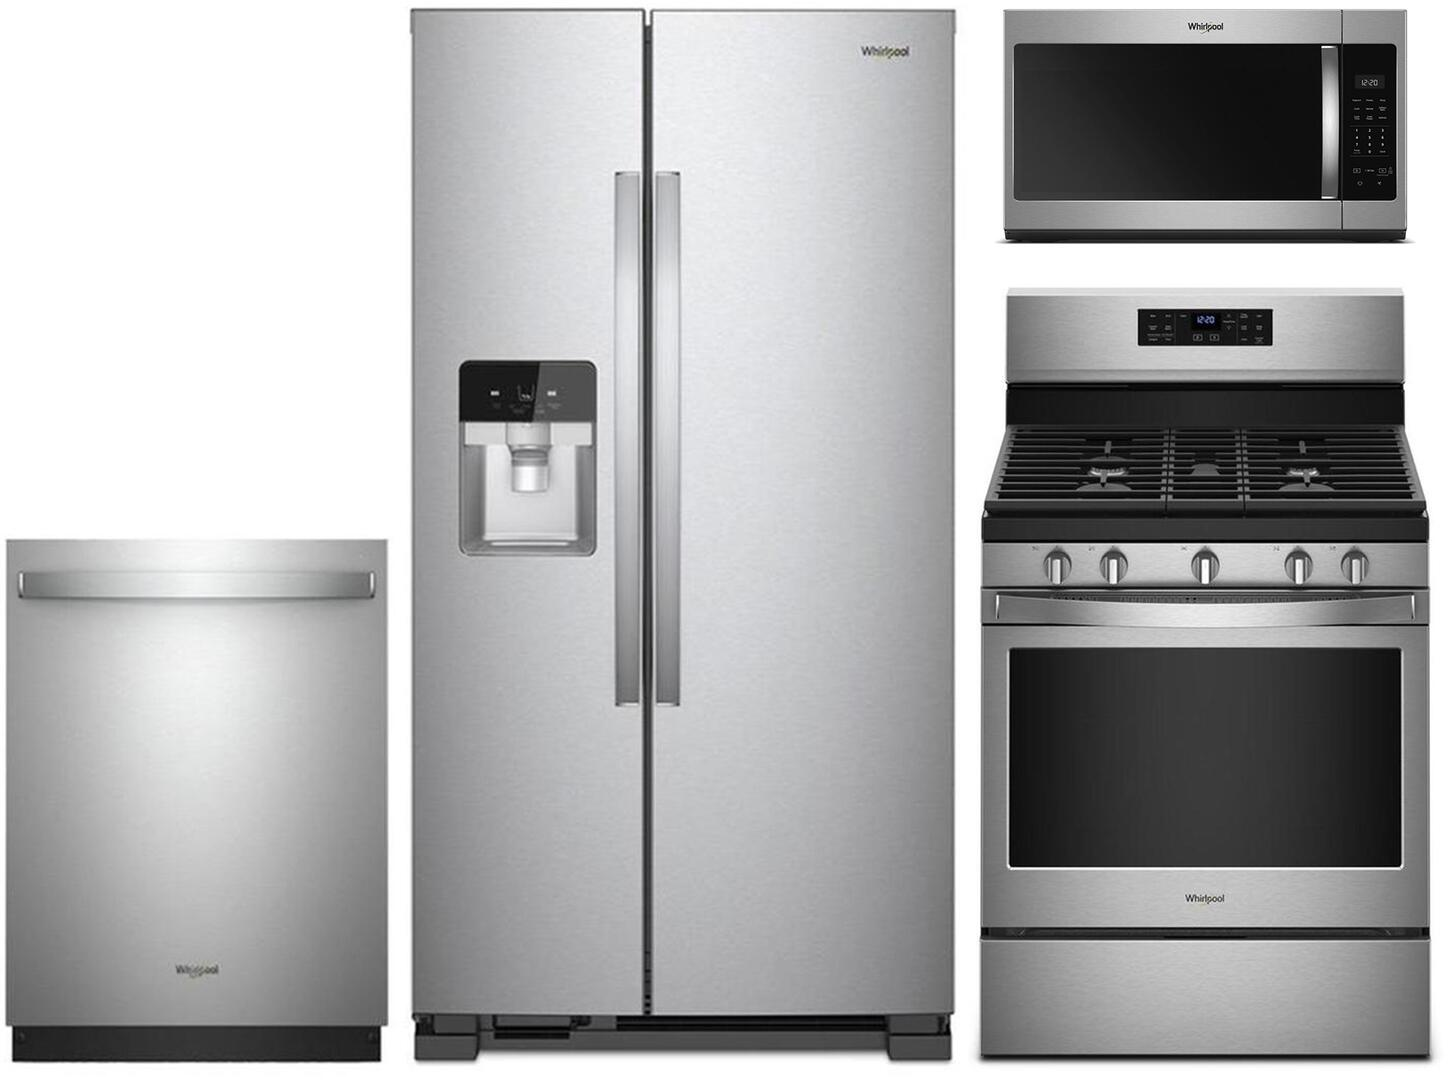 Whirlpool 930185 Kitchen Appliance Packages